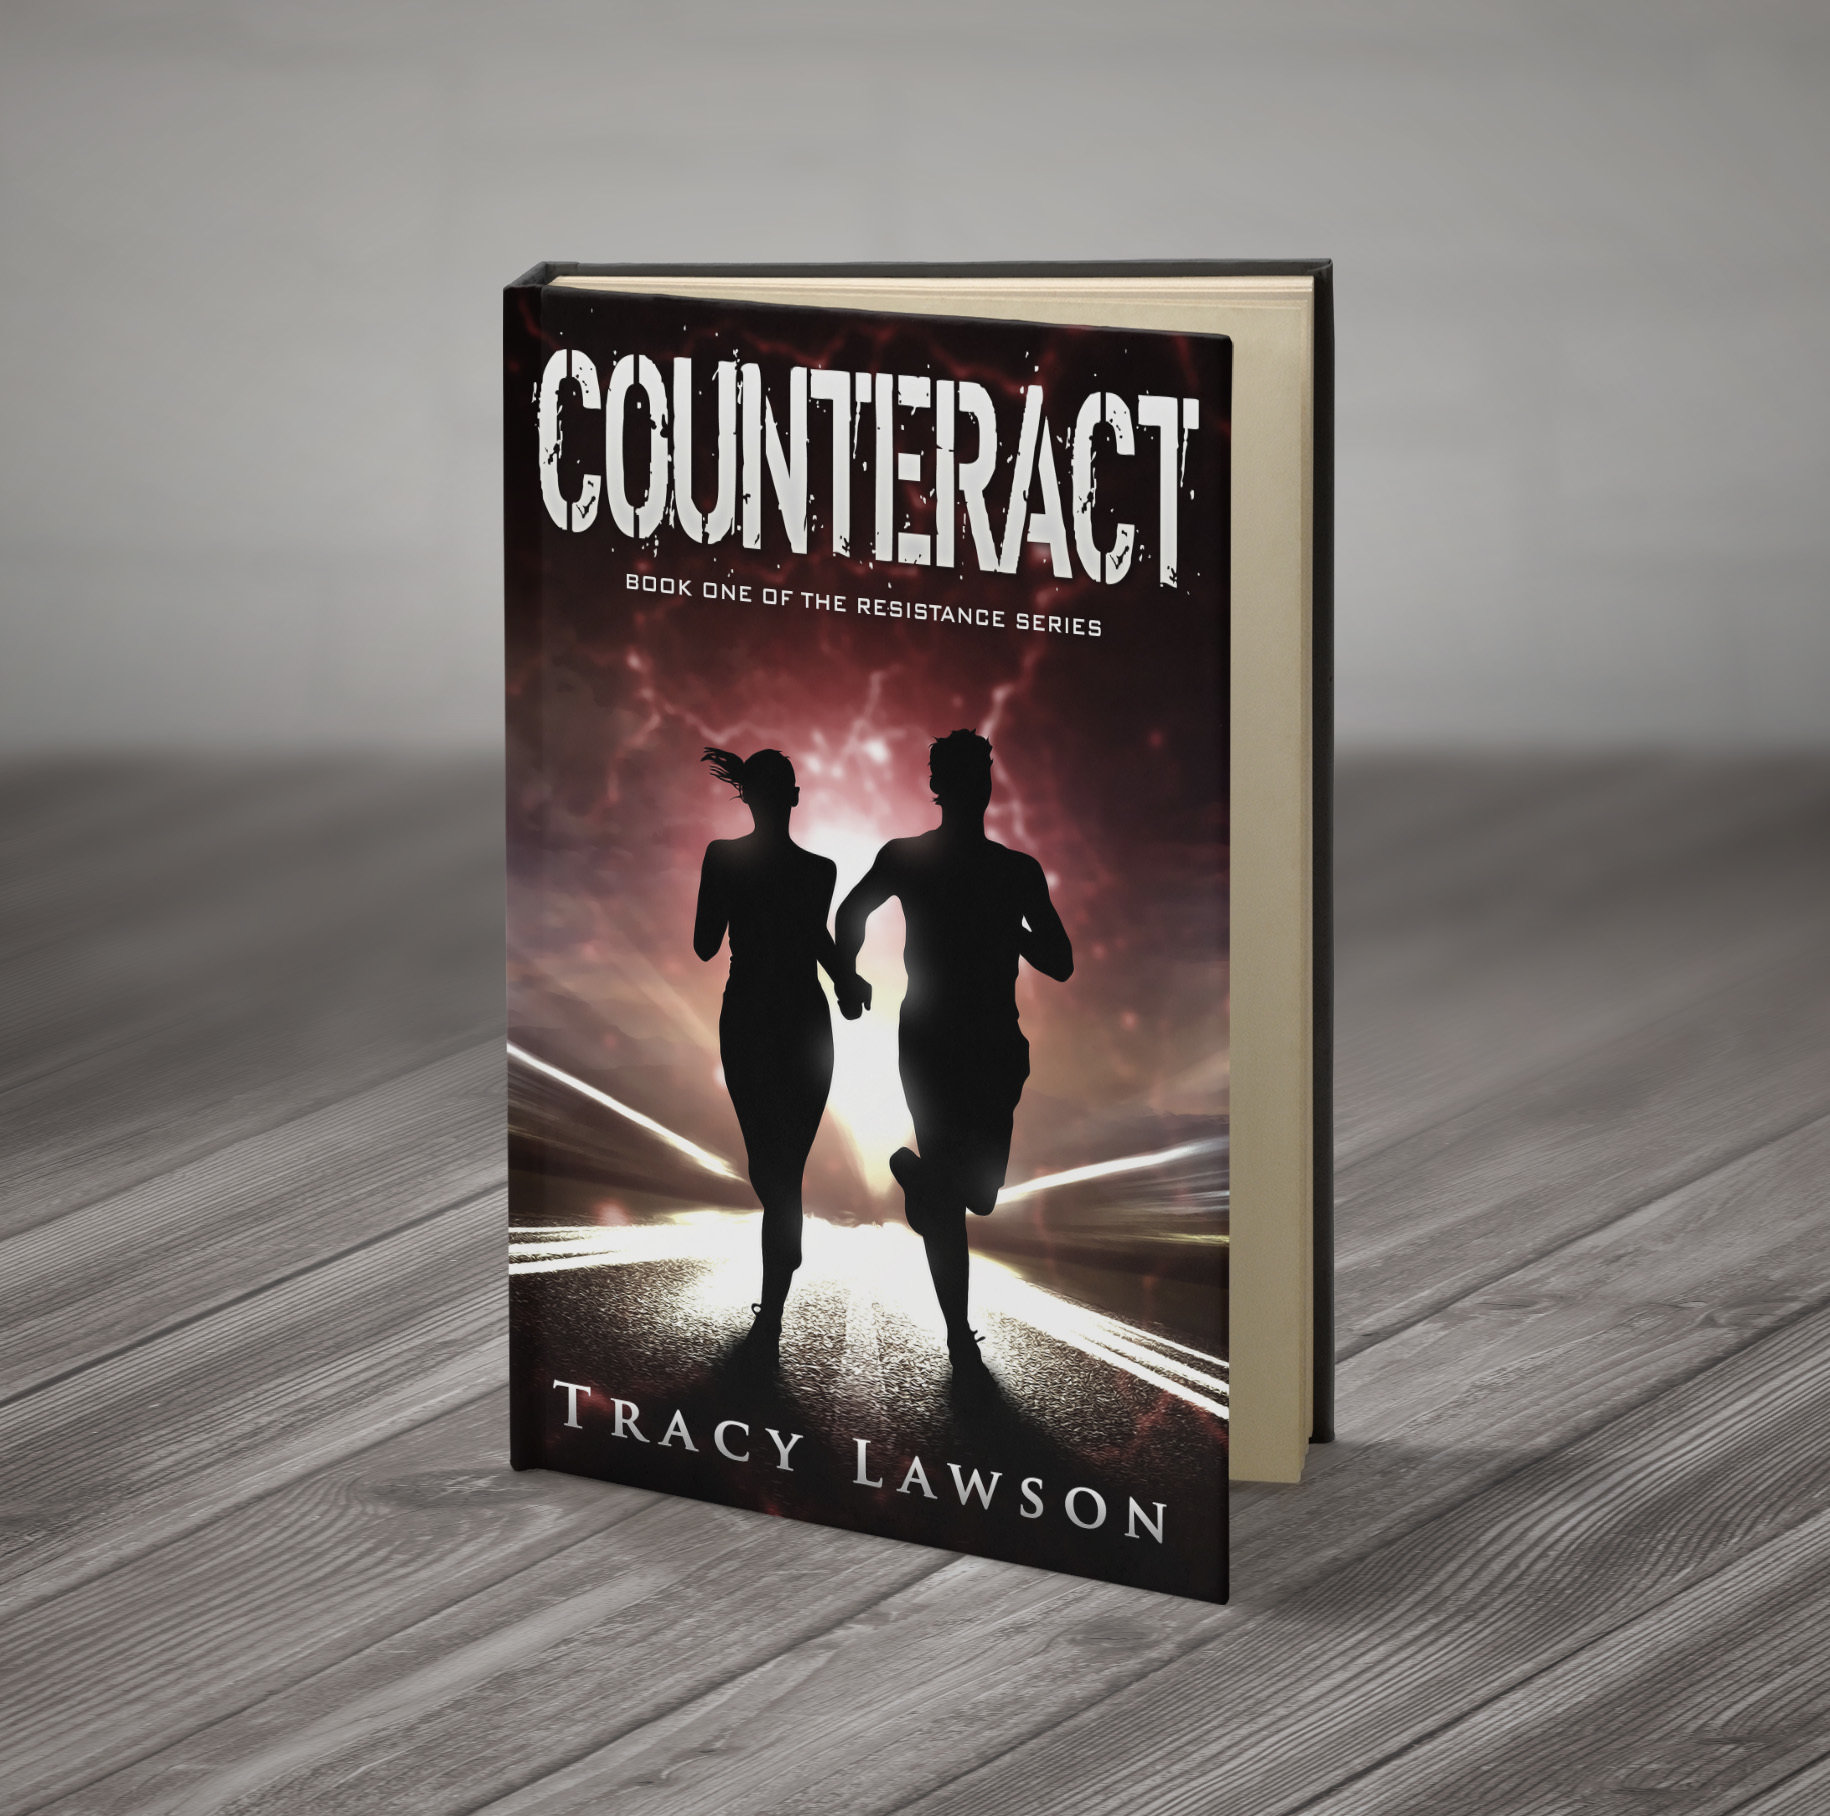 Counteract: Book One of the Resistance Series (signed) 00000